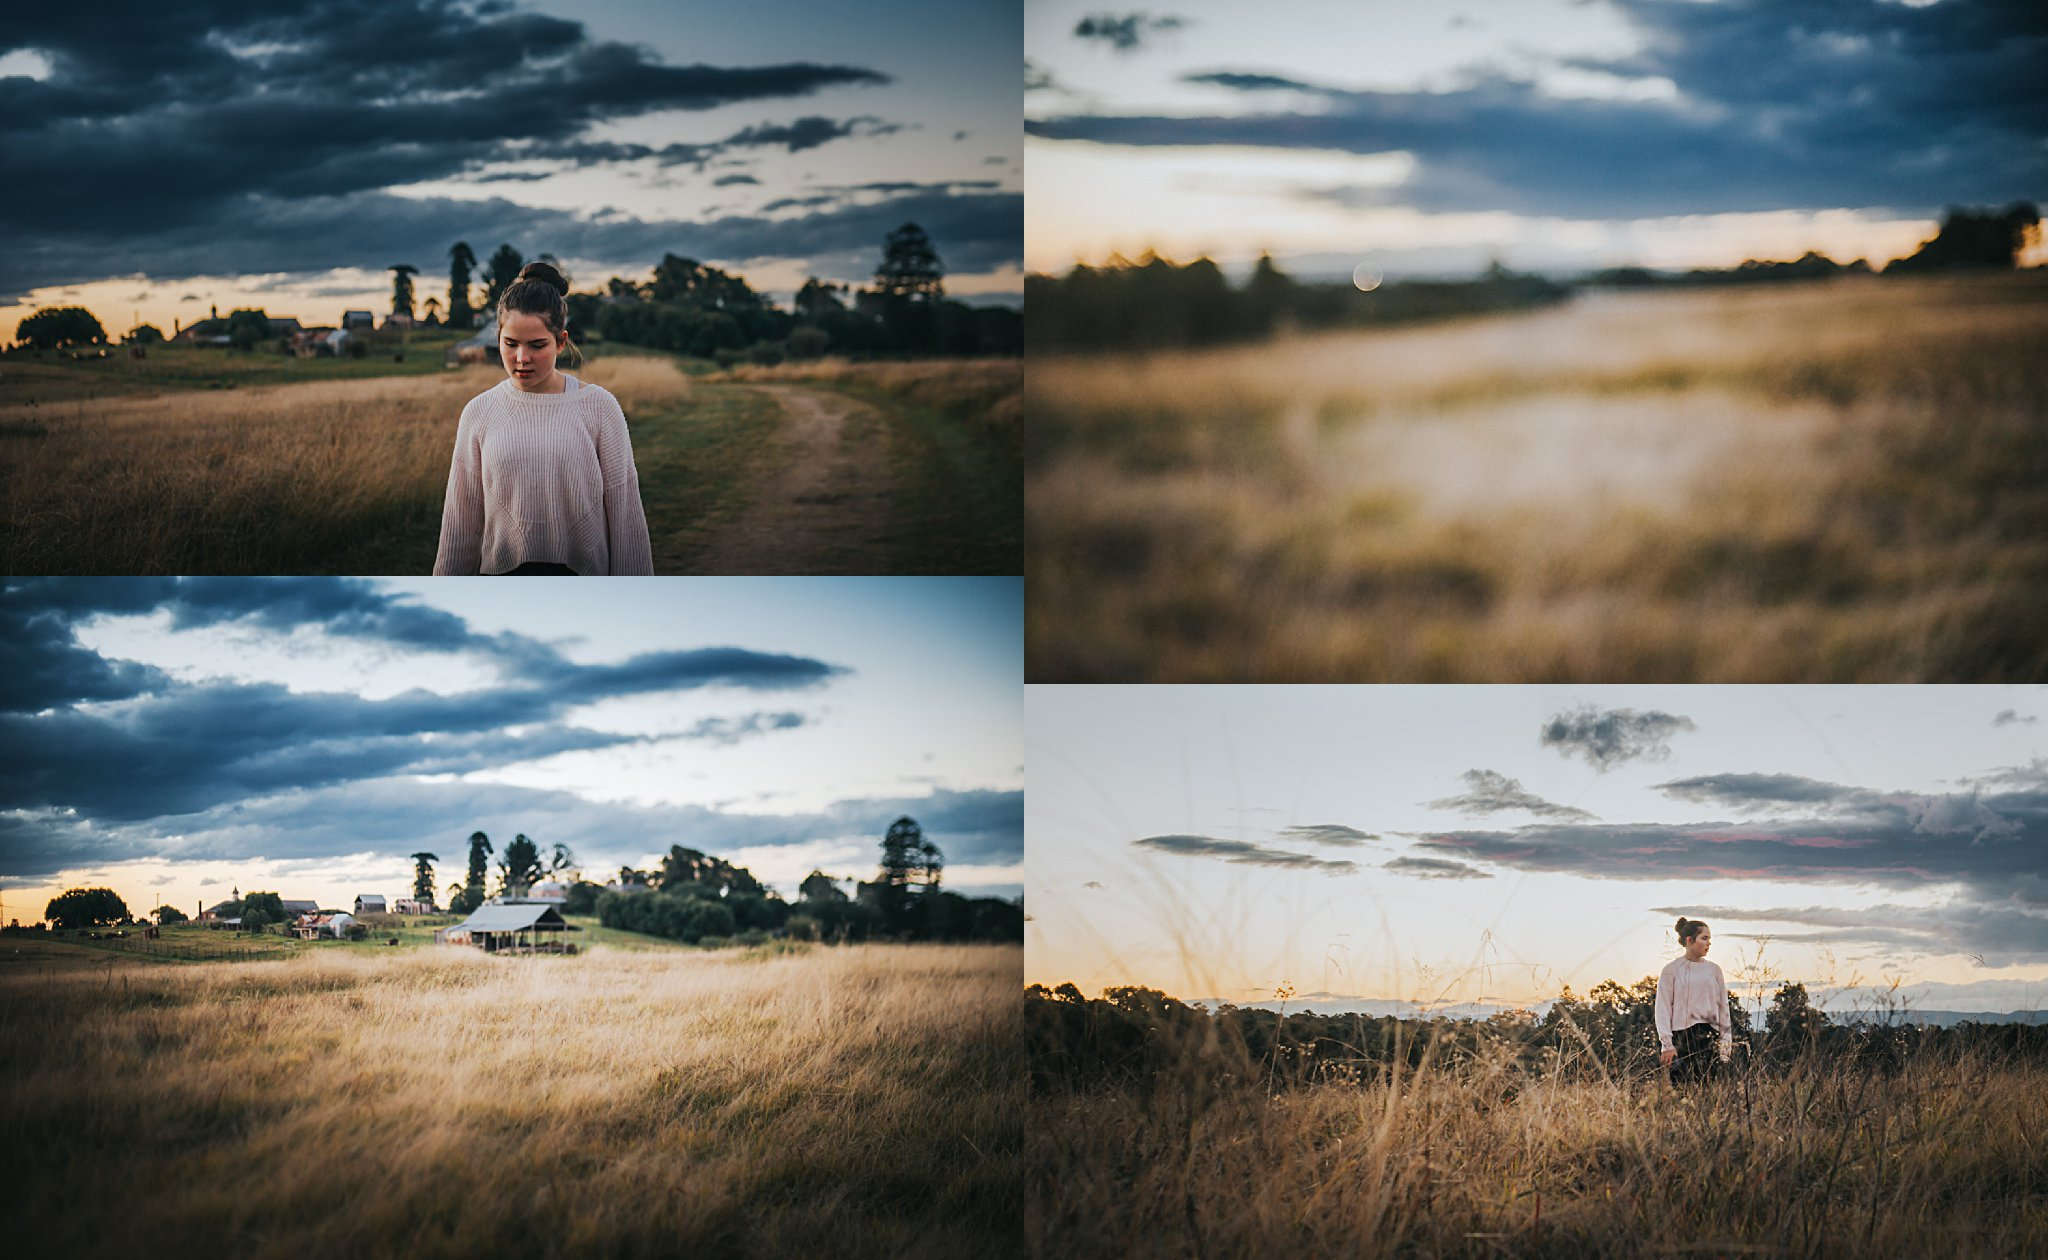 A collage of lifestyle portraits captured at sunset in Rouse Hill, Sydney.